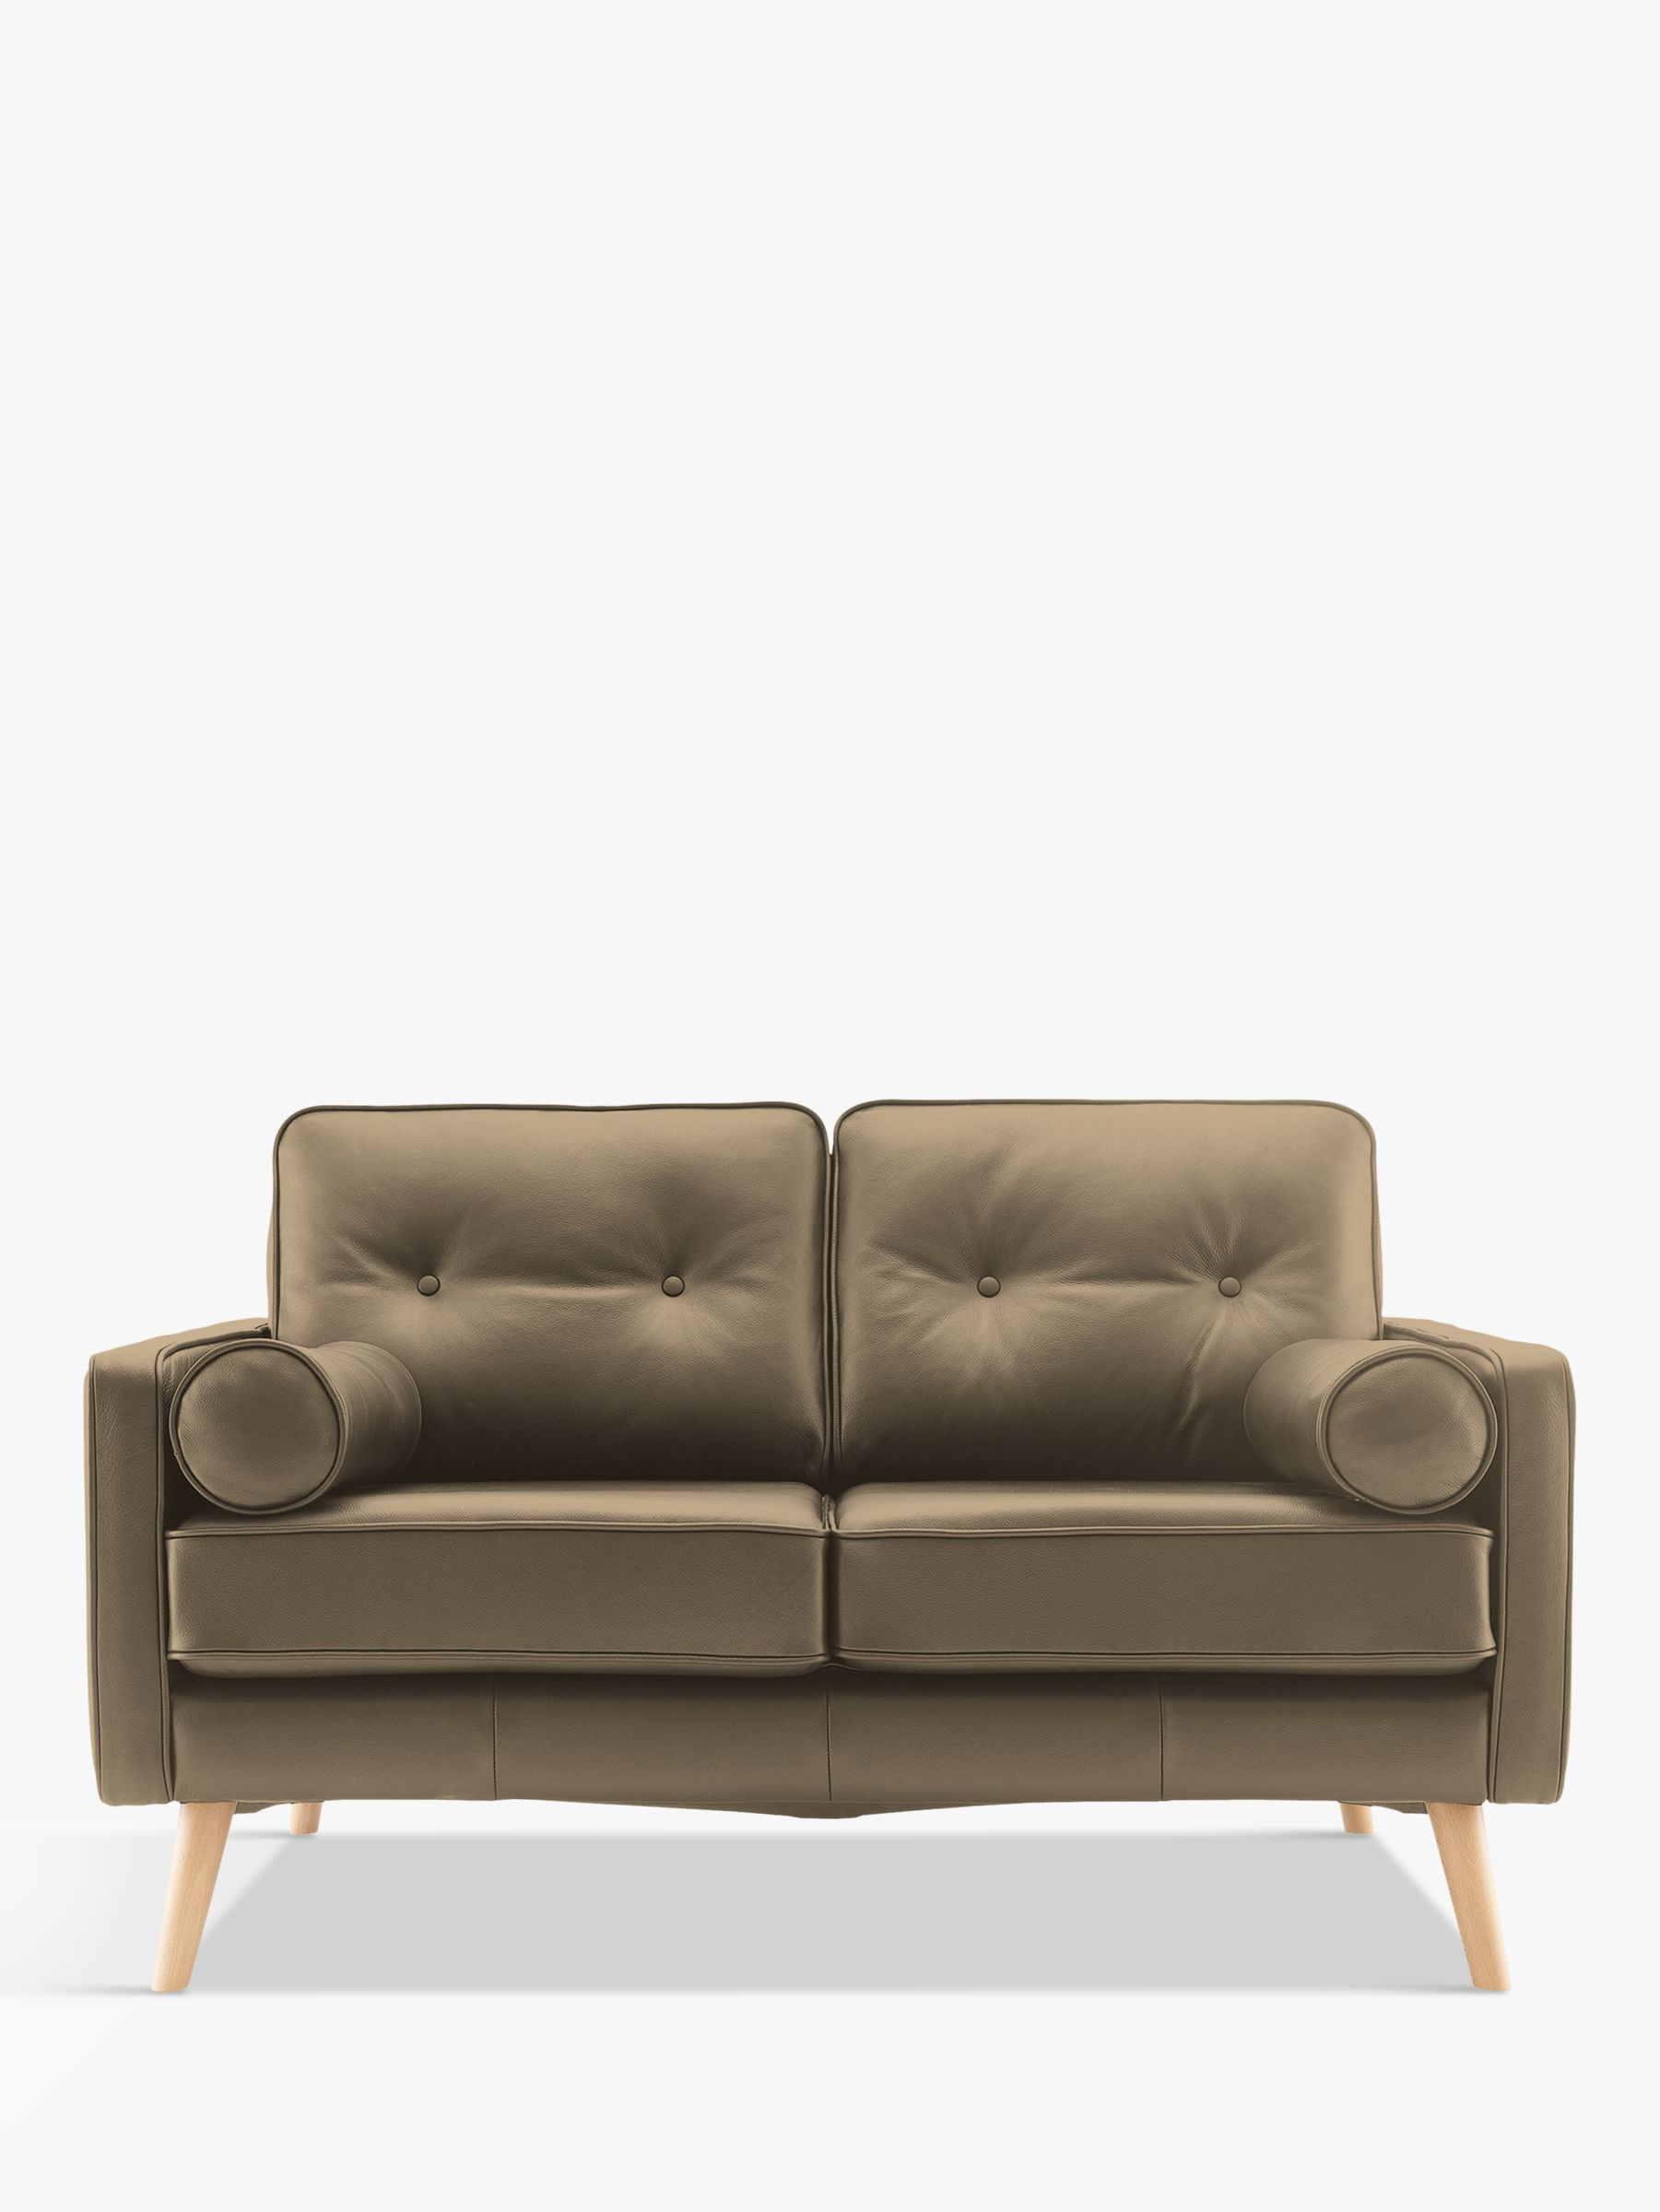 G Plan Vintage G Plan Vintage The Sixty Five Small 2 Seater Leather Sofa